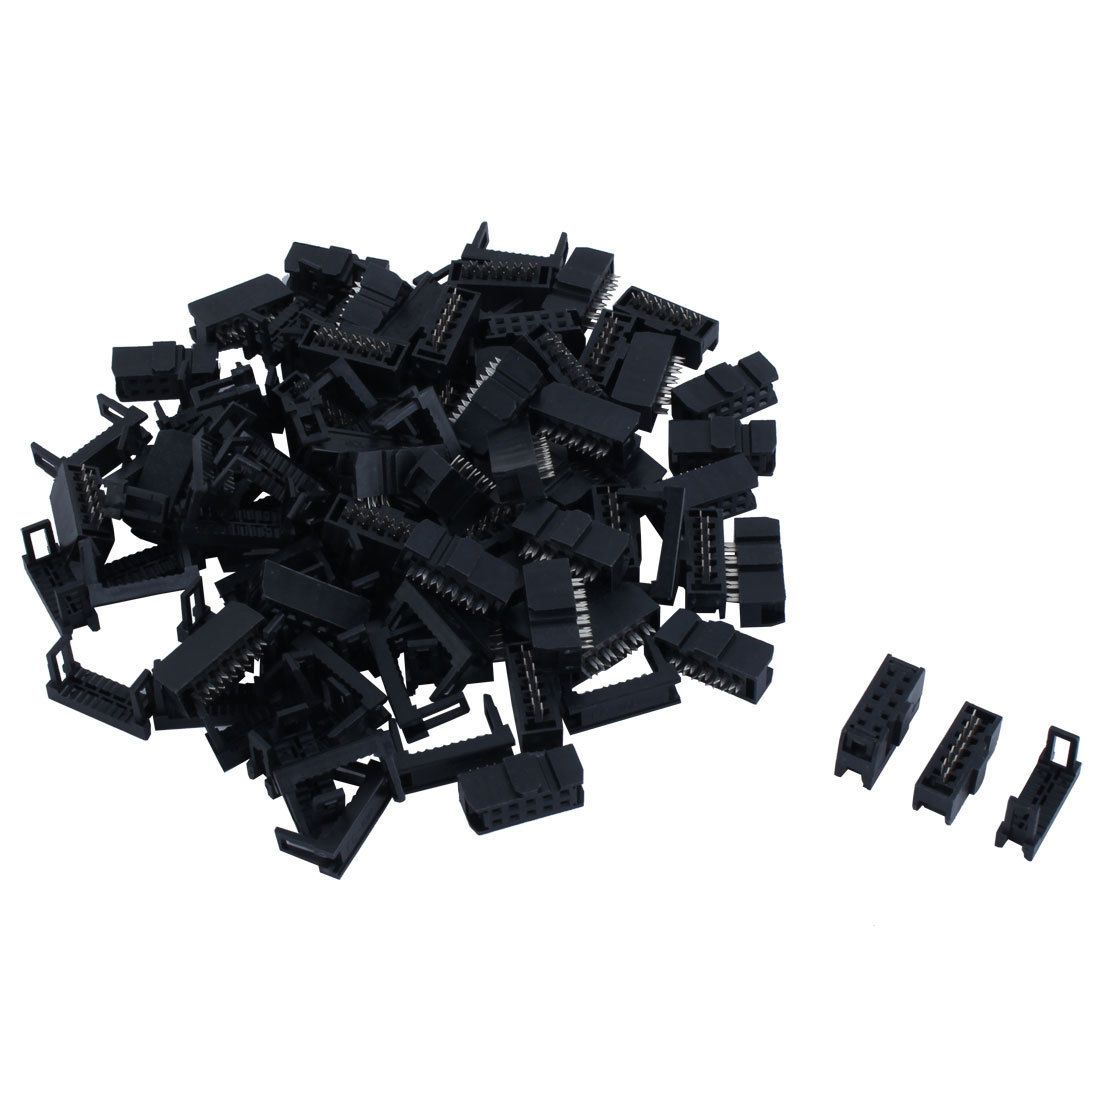 9 56 50 Pcs 2 54mm Pitch 10 Pin Idc Header W Strain Relief For Flat Ribbon Cable Ebay Electronics Ebay Cable Pitch